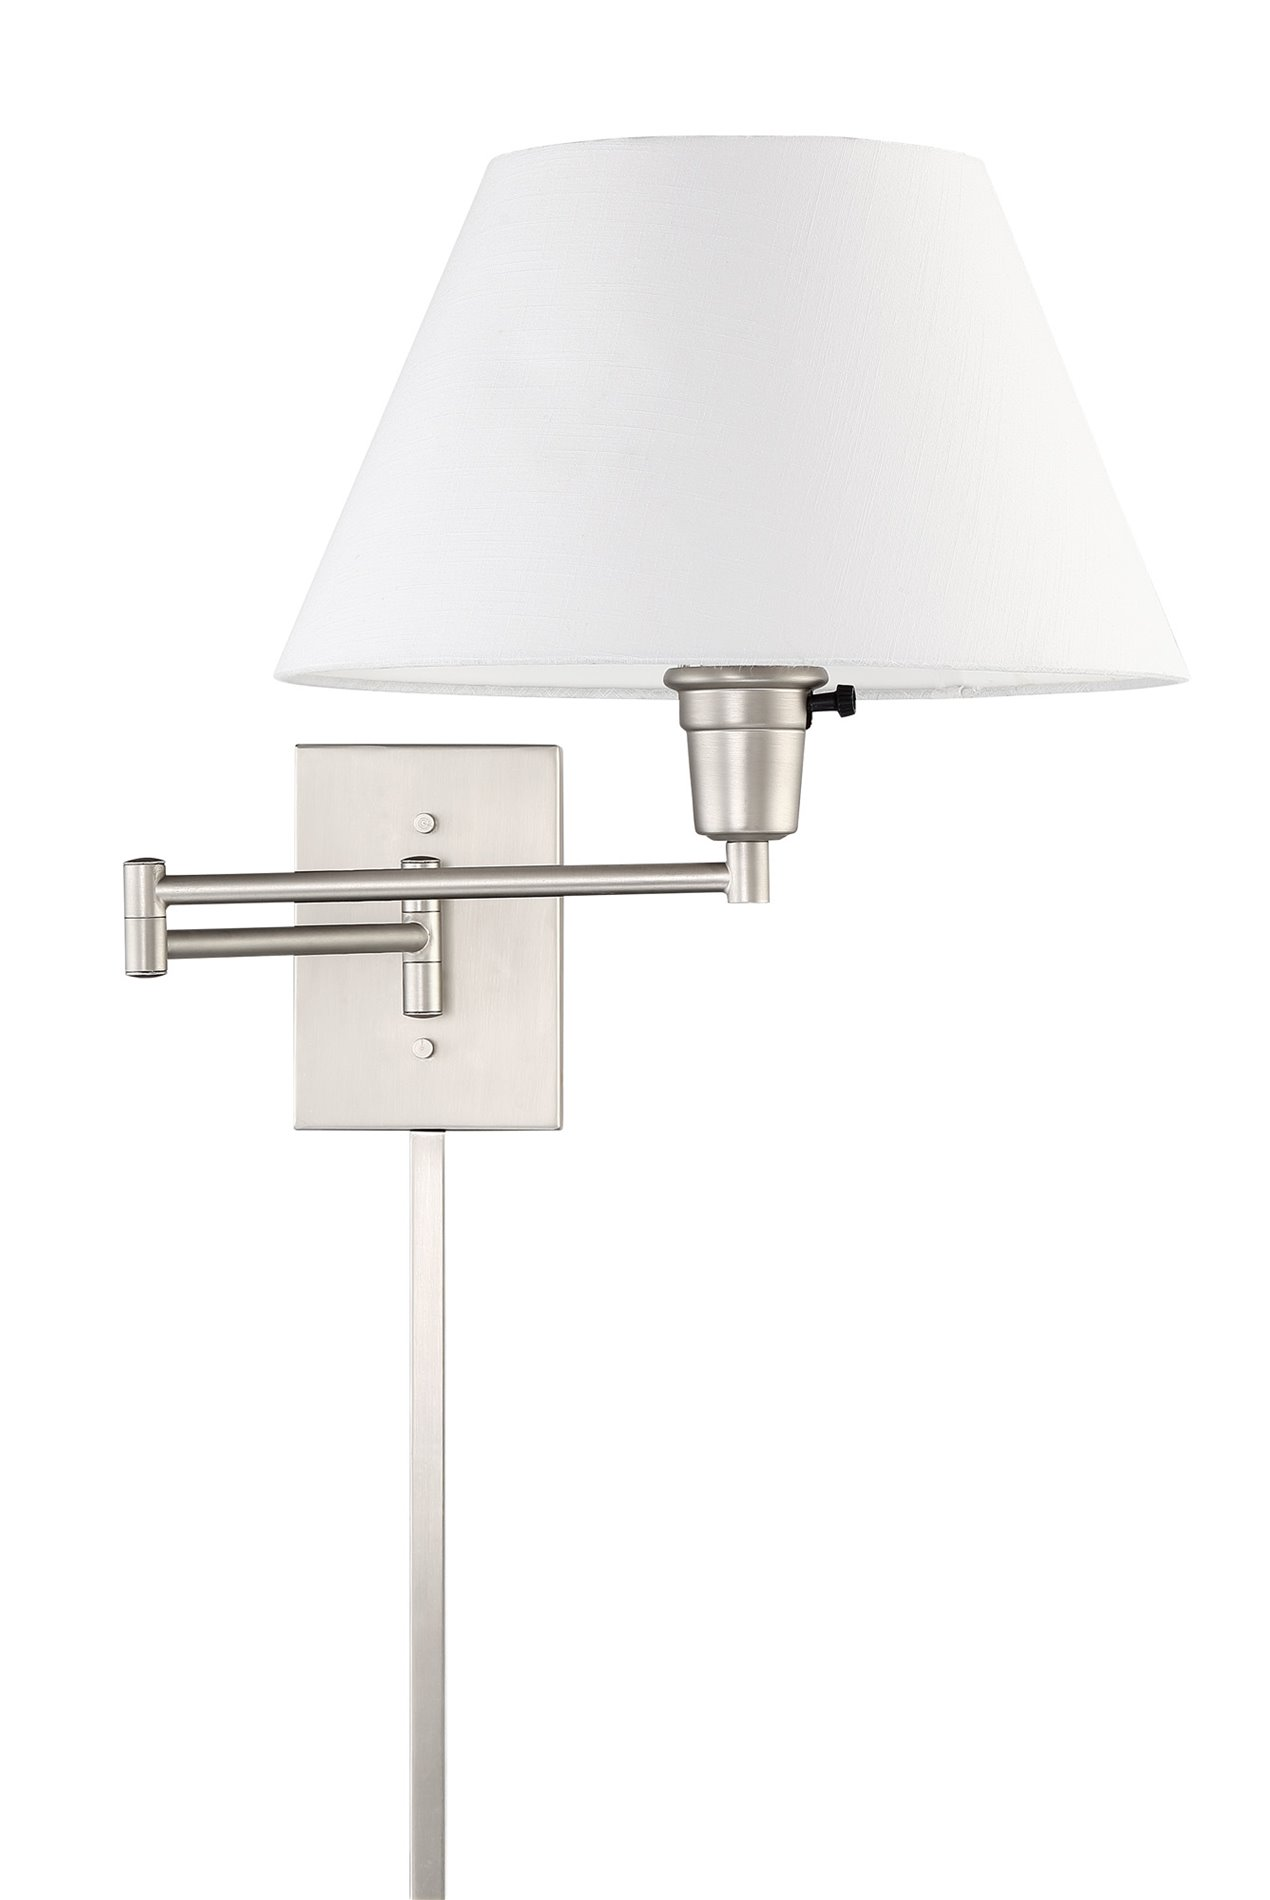 "Revel Cambridge 13"" Swing Arm Wall Lamp Plug In Wall Mount + White Fabric Shade, 150W 3-Way, Satin Nickel Finish by"